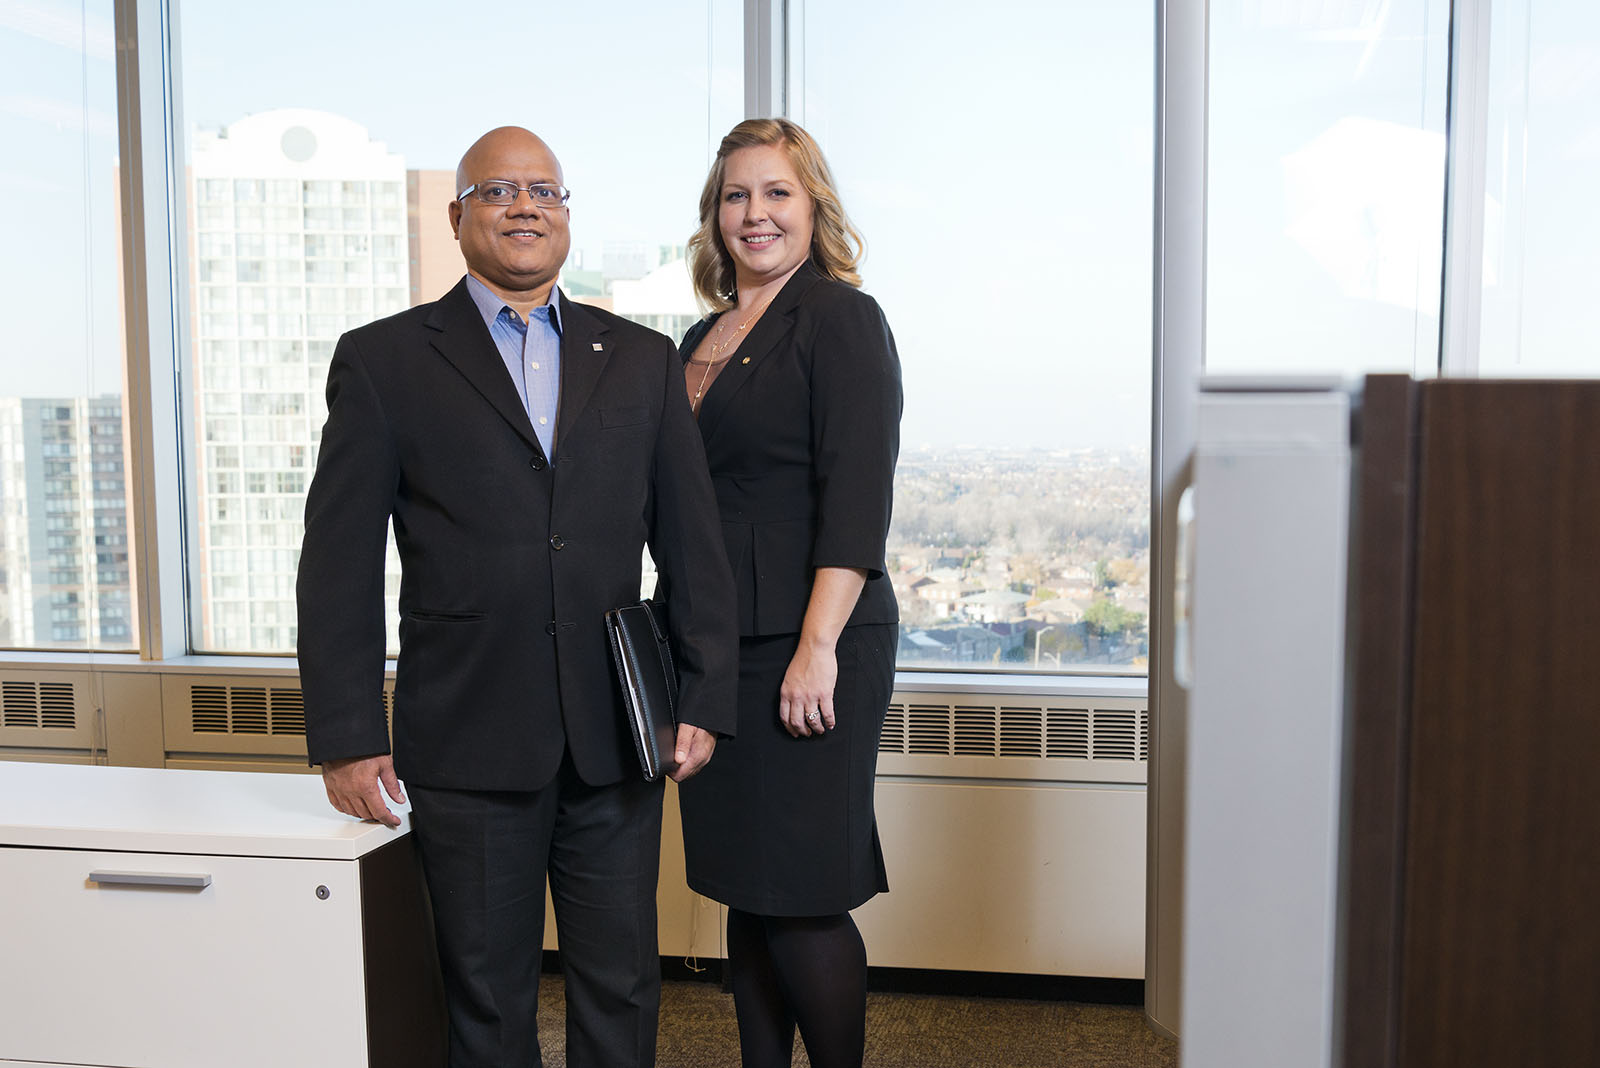 One businessman and one businesswoman in black suits